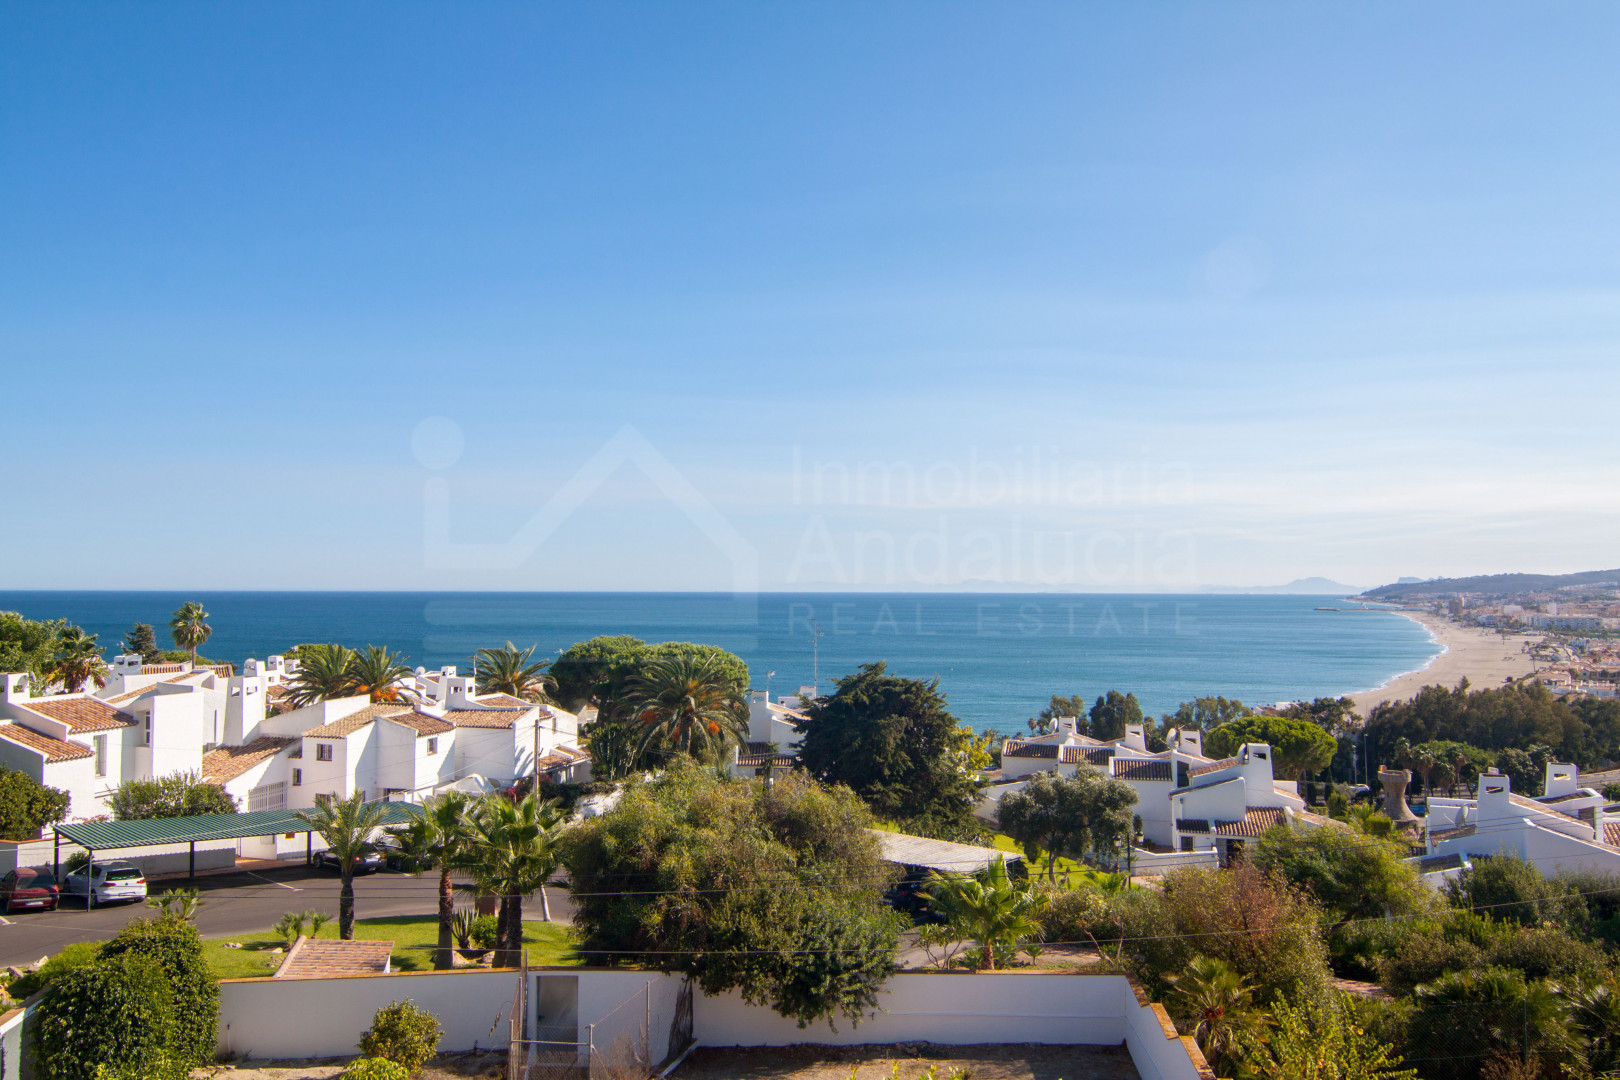 Four bedroom south-facing villa with unbroken sea views for sale in Bahia de Casares